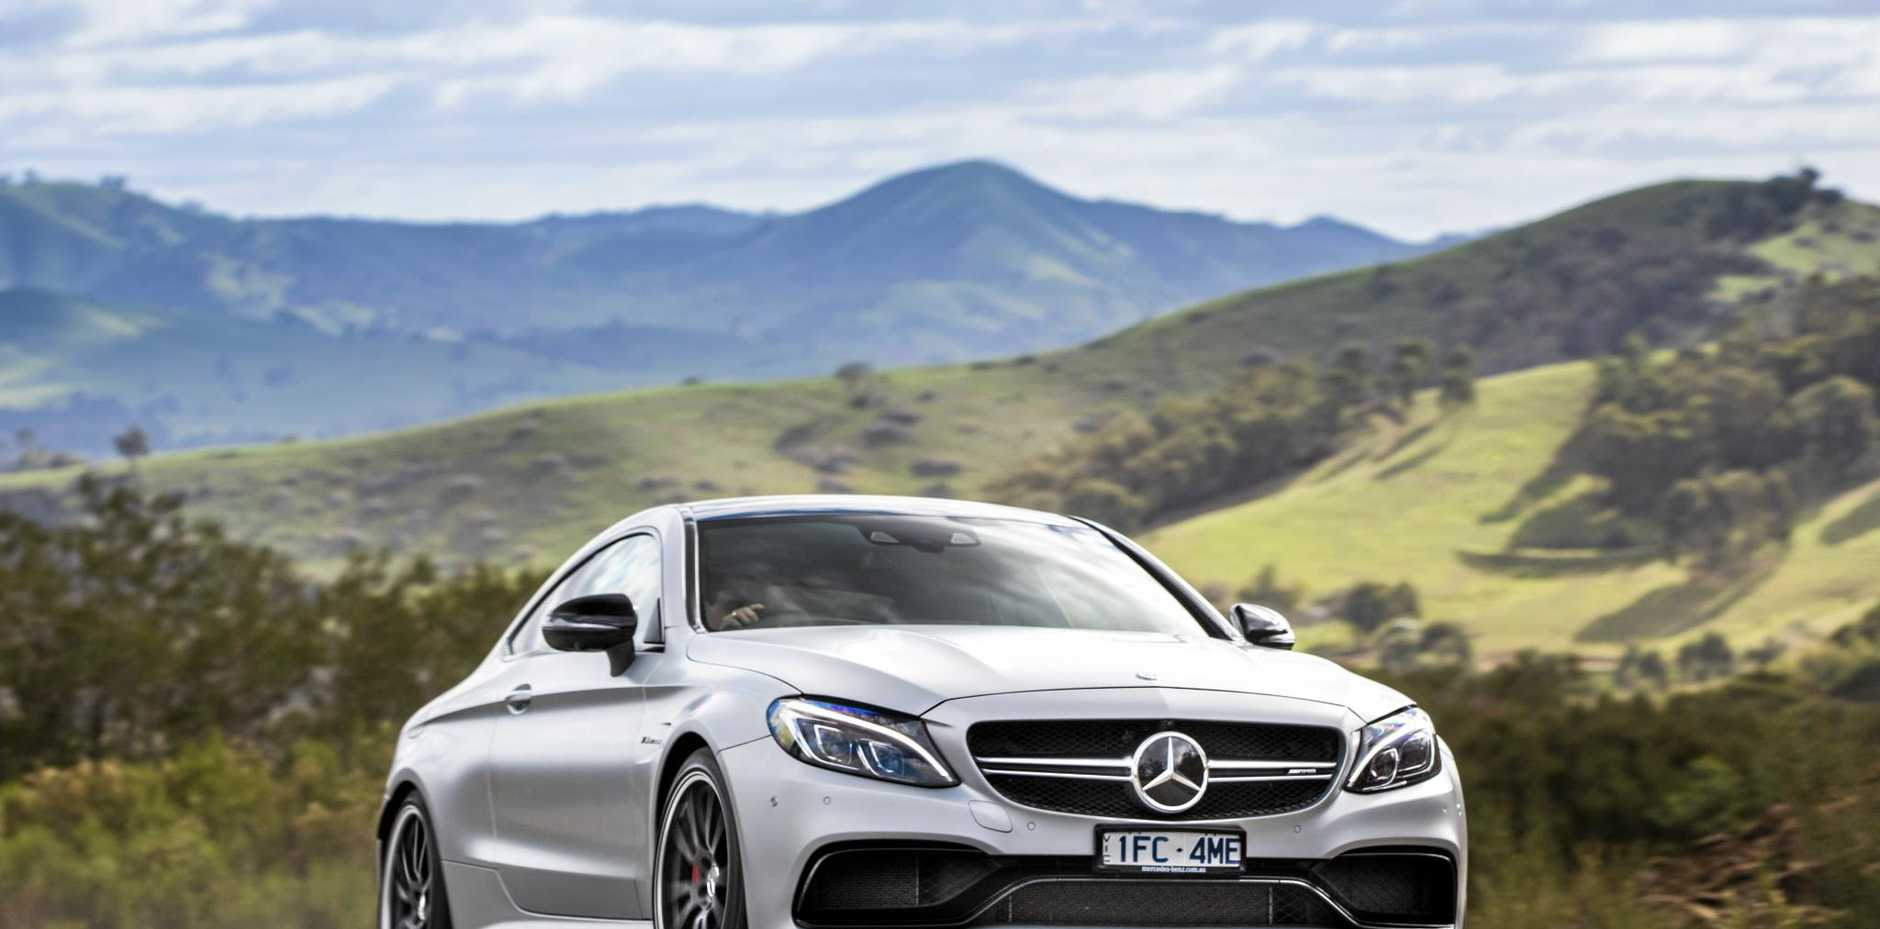 The Mercedes-AMG C63 S Coupe is powered by a bi-turbo V8, and can reach 100kmh from standstill in less than four seconds.